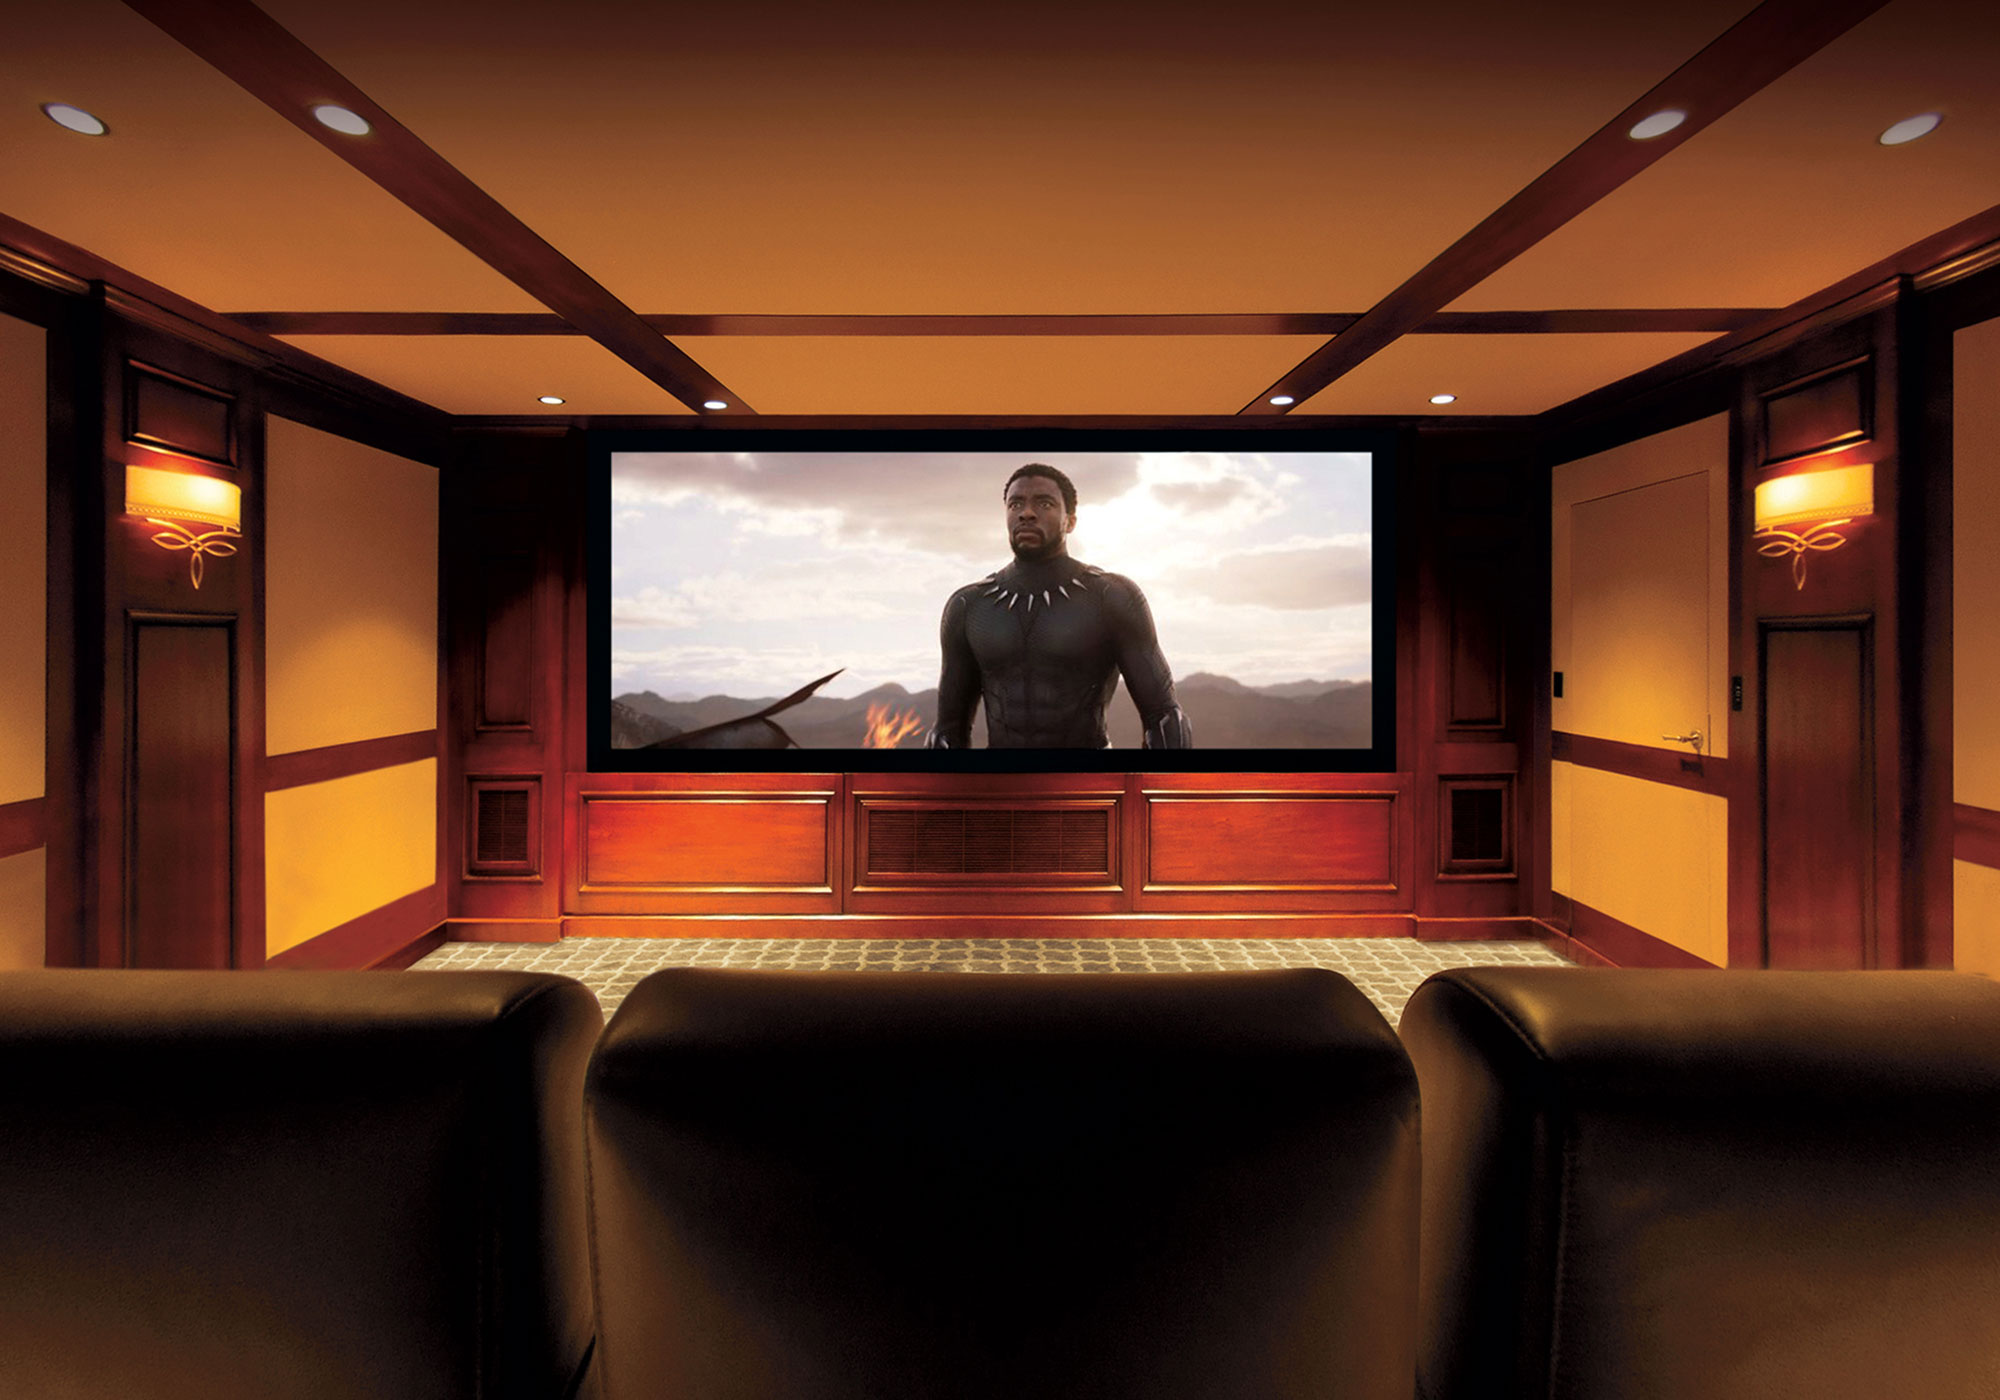 theater, projection system, movie screen, speakers, surround sound